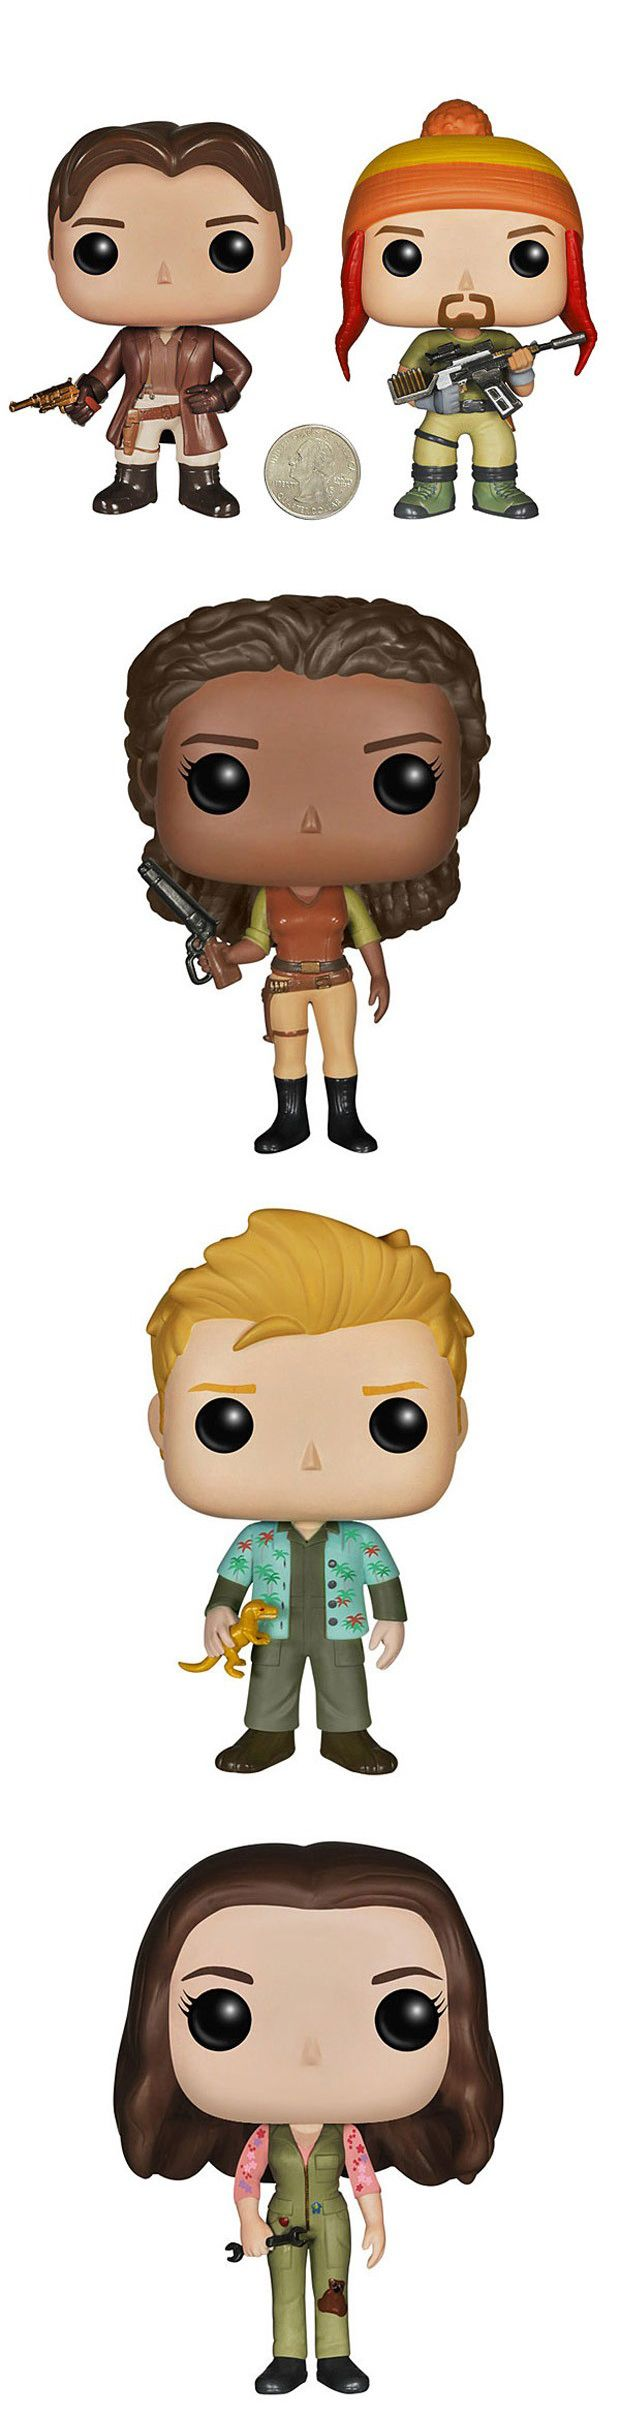 Firefly Funko Pop! Vinyl Figures Lack River If you are a fan of Firefly, you might recall a while back we mentioned that Funko was working on a line of its Pop! action figures featuring the crew of the Serenity. It's been a couple of years now since we talked about those action figures and you can now buy them on ThinkGeek for $9.99 each. - See more at: http://technabob.com/blog/2015/01/20/firefly-funko-pop-vinyl-figures/#sthash.MHSlU2Xu.dpuf